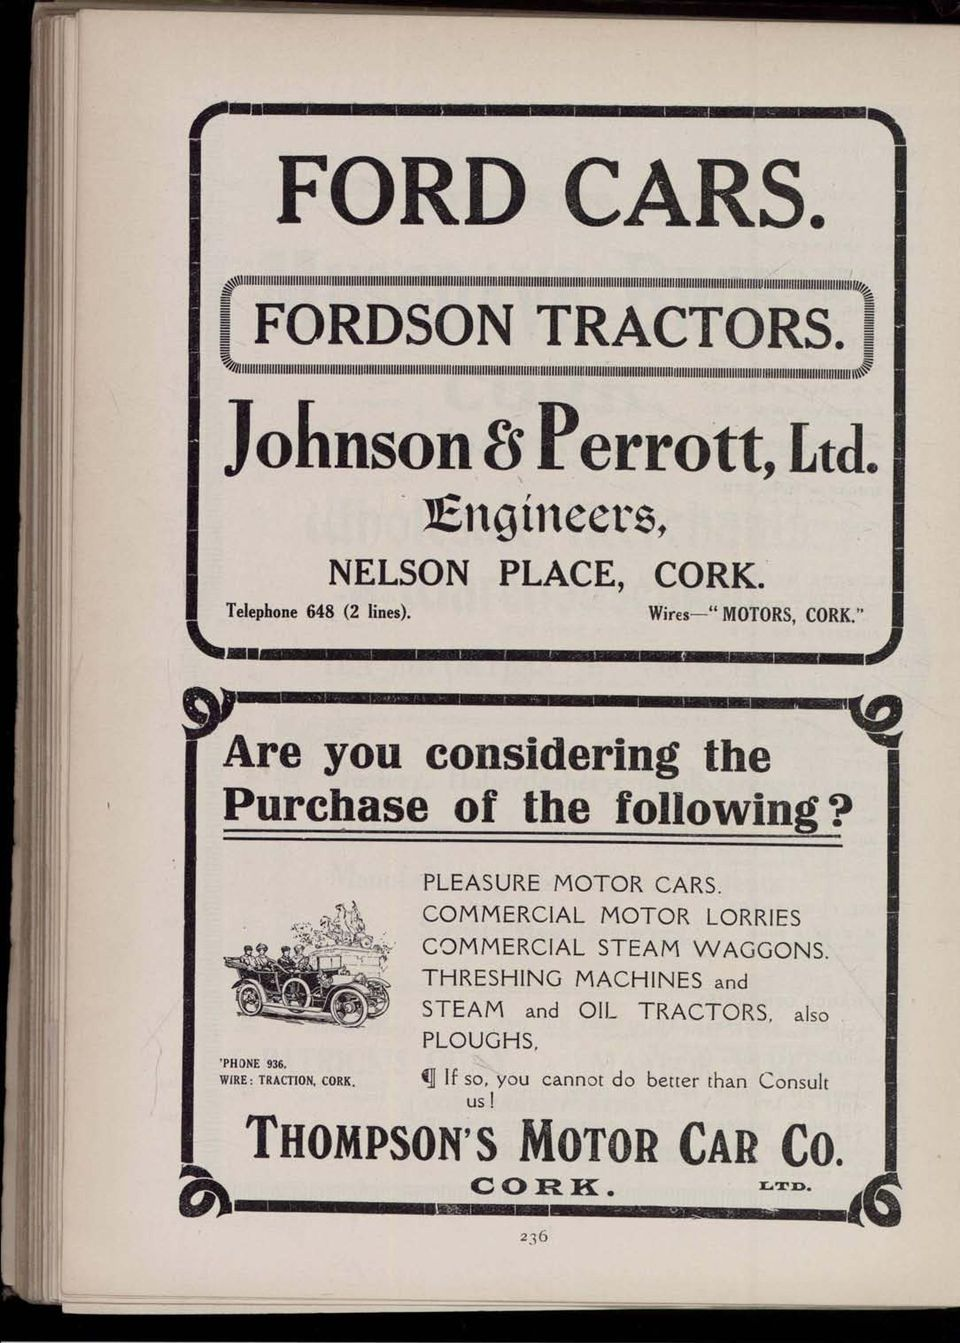 "^Engineers, NELSON PLACE, CORK. Wires "" MOTORS, CORK.' y Are you considering the Purchase of the following? 'PHONE 936. WIRE; TRACTION, CORK. PLEASURE MOTOR CARS."